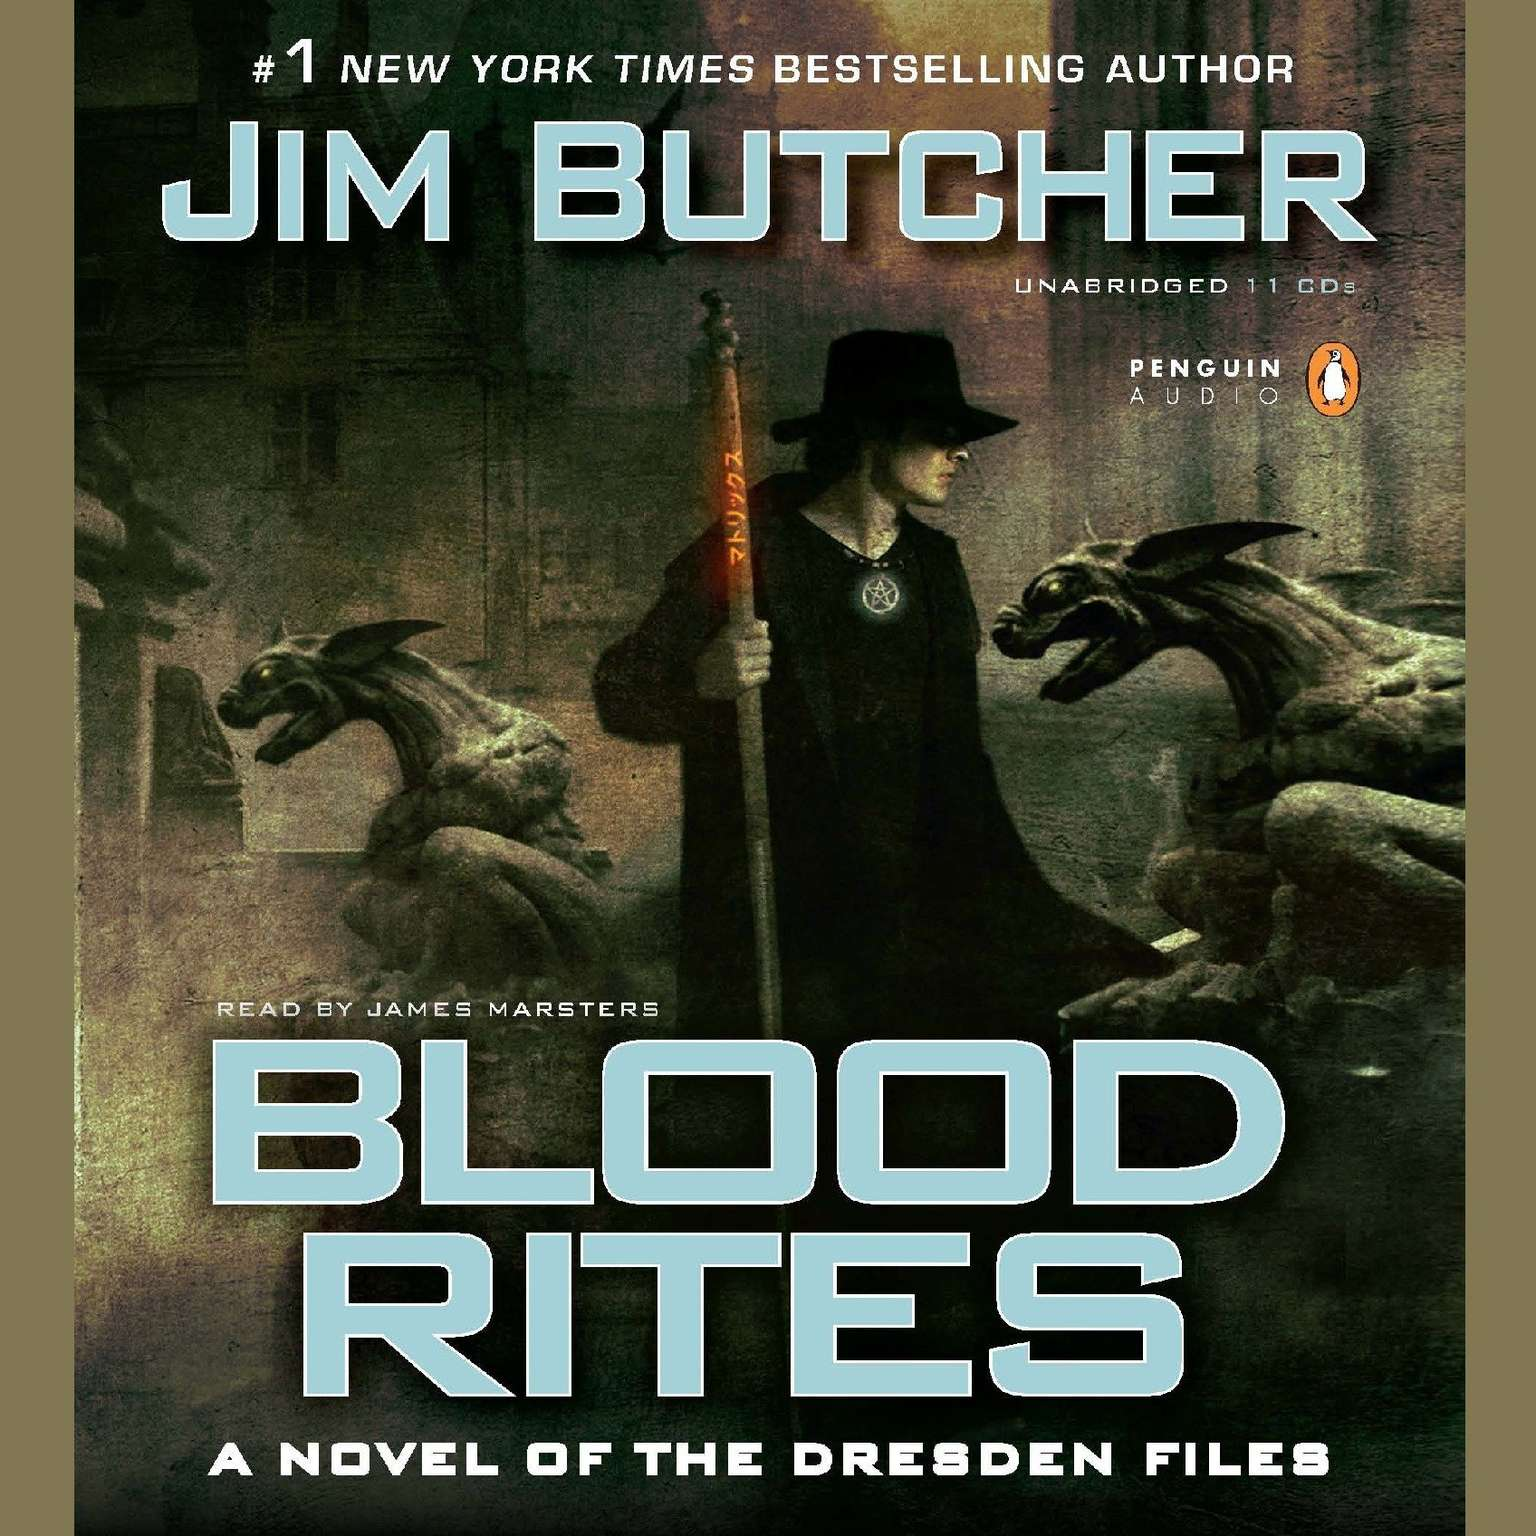 Printable Blood Rites: Book six of The Dresden Files Audiobook Cover Art